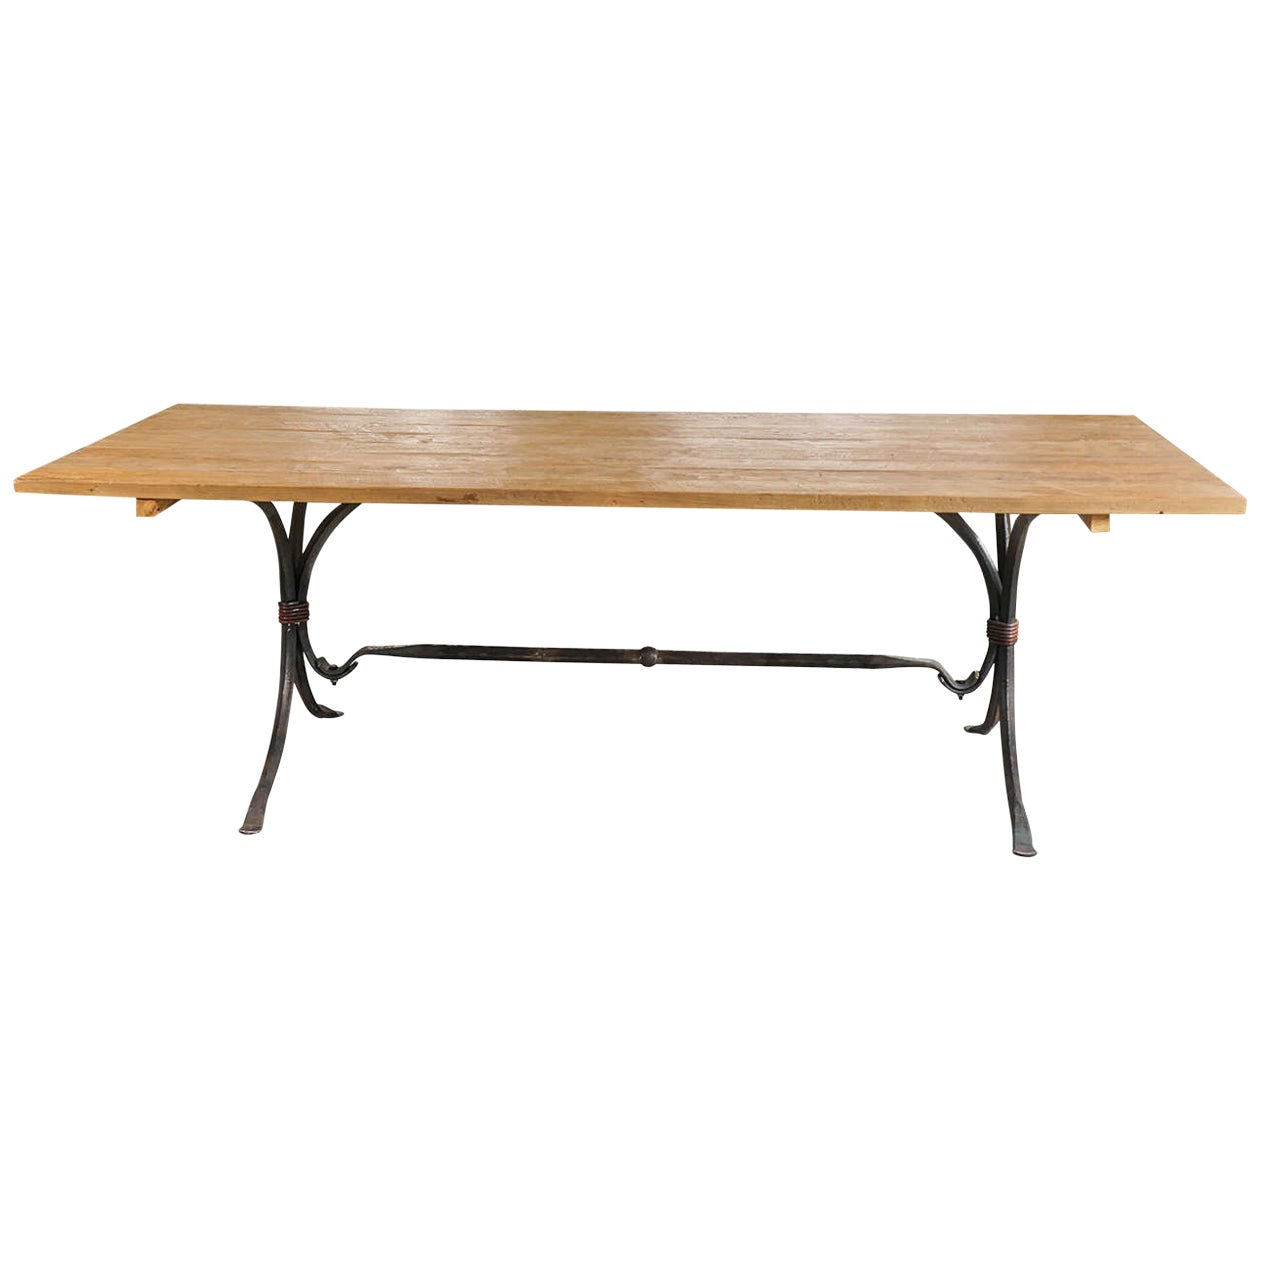 Wrought Iron Indoor or Outdoor Dining Table Base